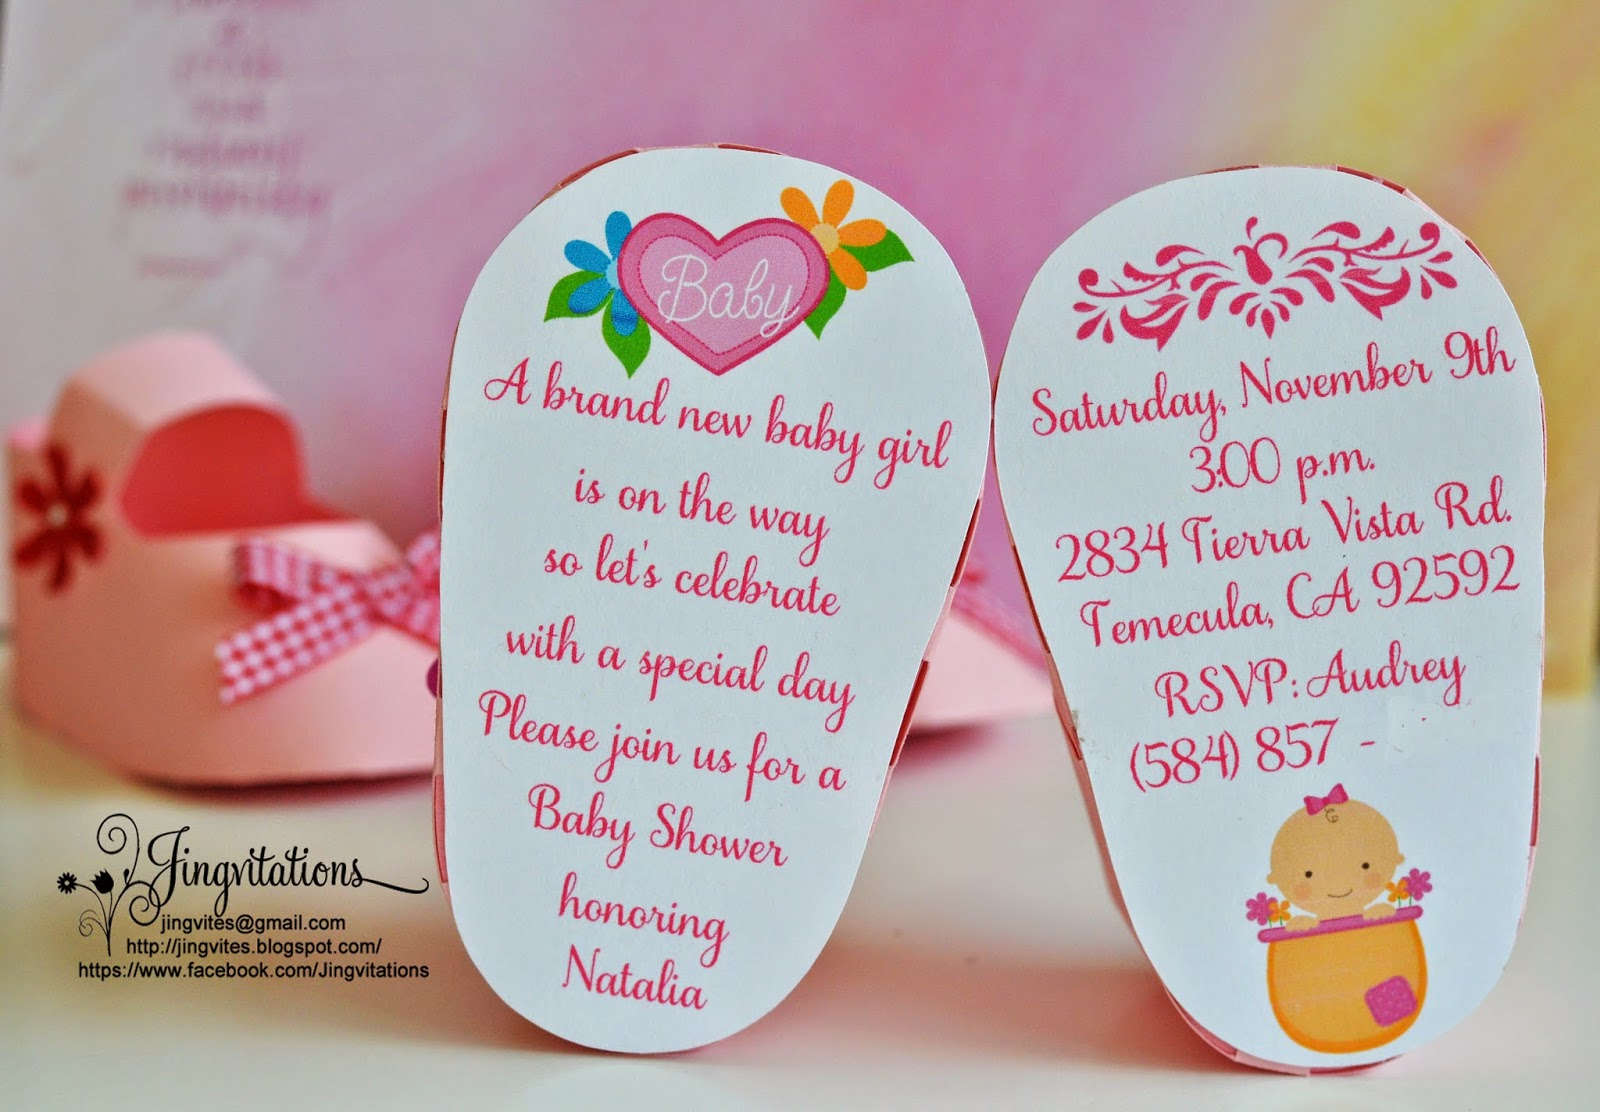 Jingvitations 3D Invitations Very Unique Baby Shoe Invites for